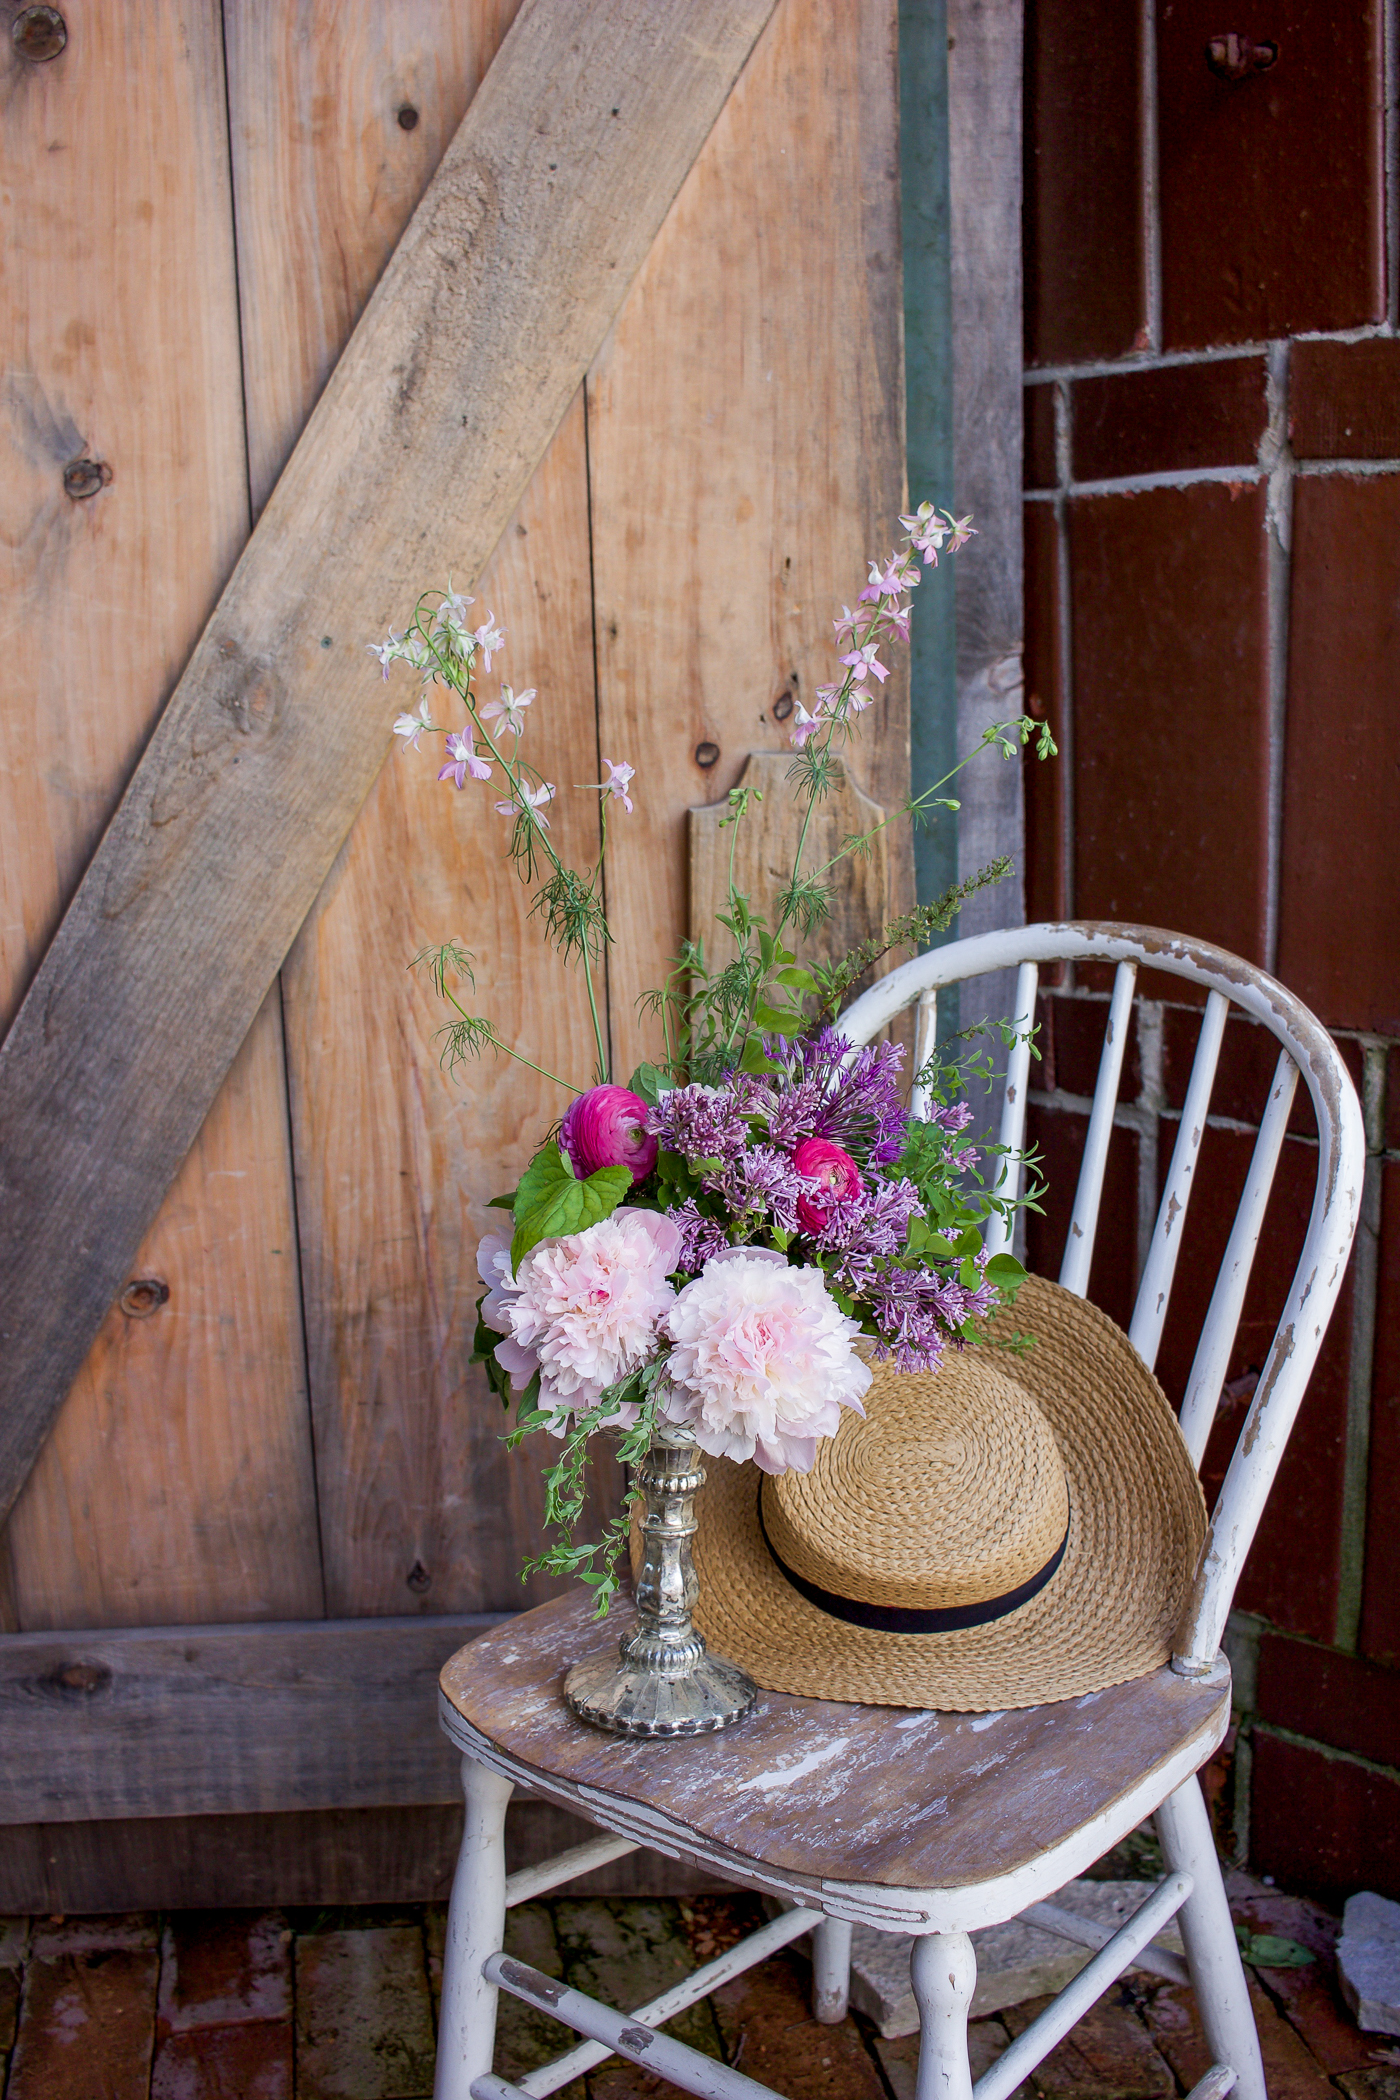 flowers and beautiful rustic farm decor